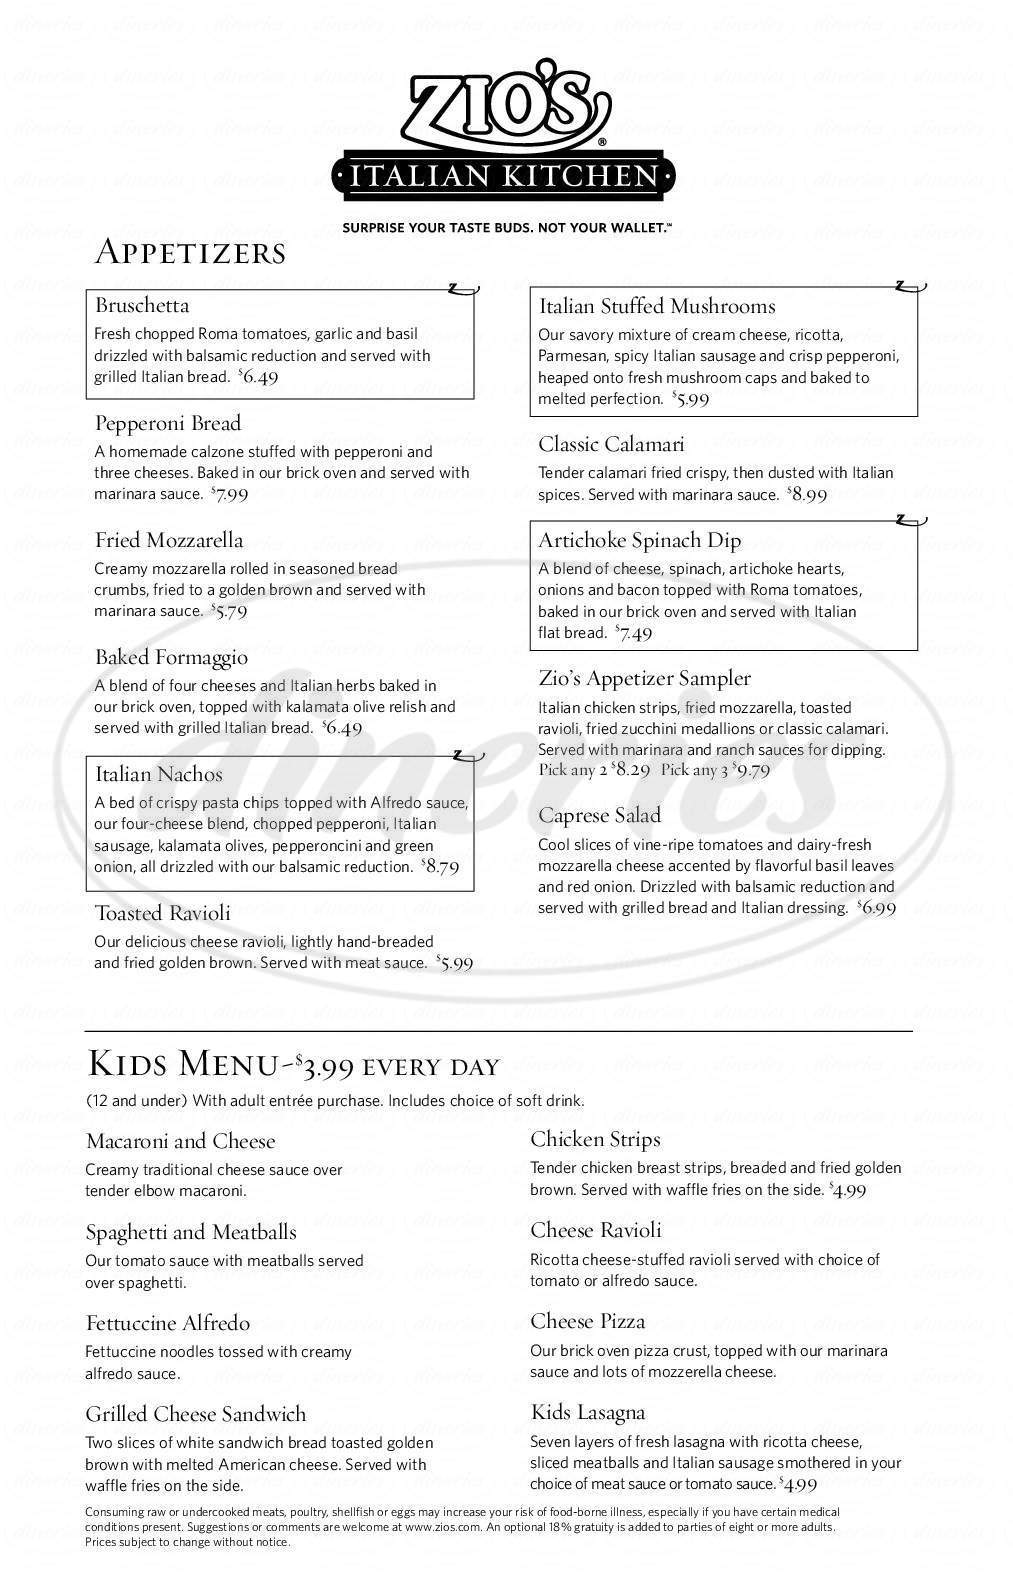 menu for zios italian kitchen - Zios Italian Kitchen